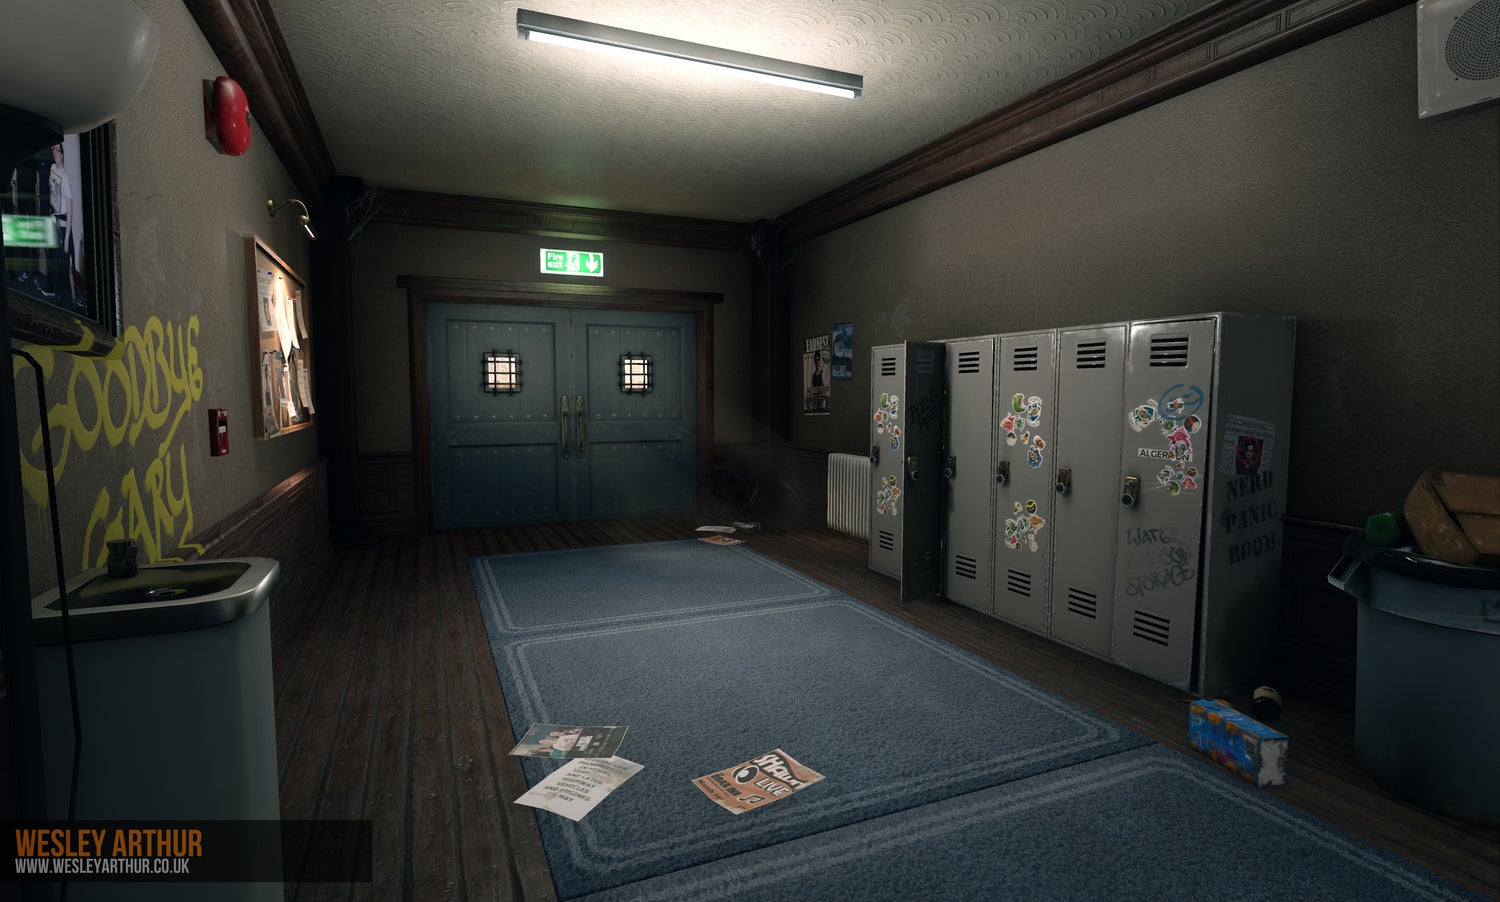 Bullworth Academy from Rockstar's Bully Gets an HD Makeover